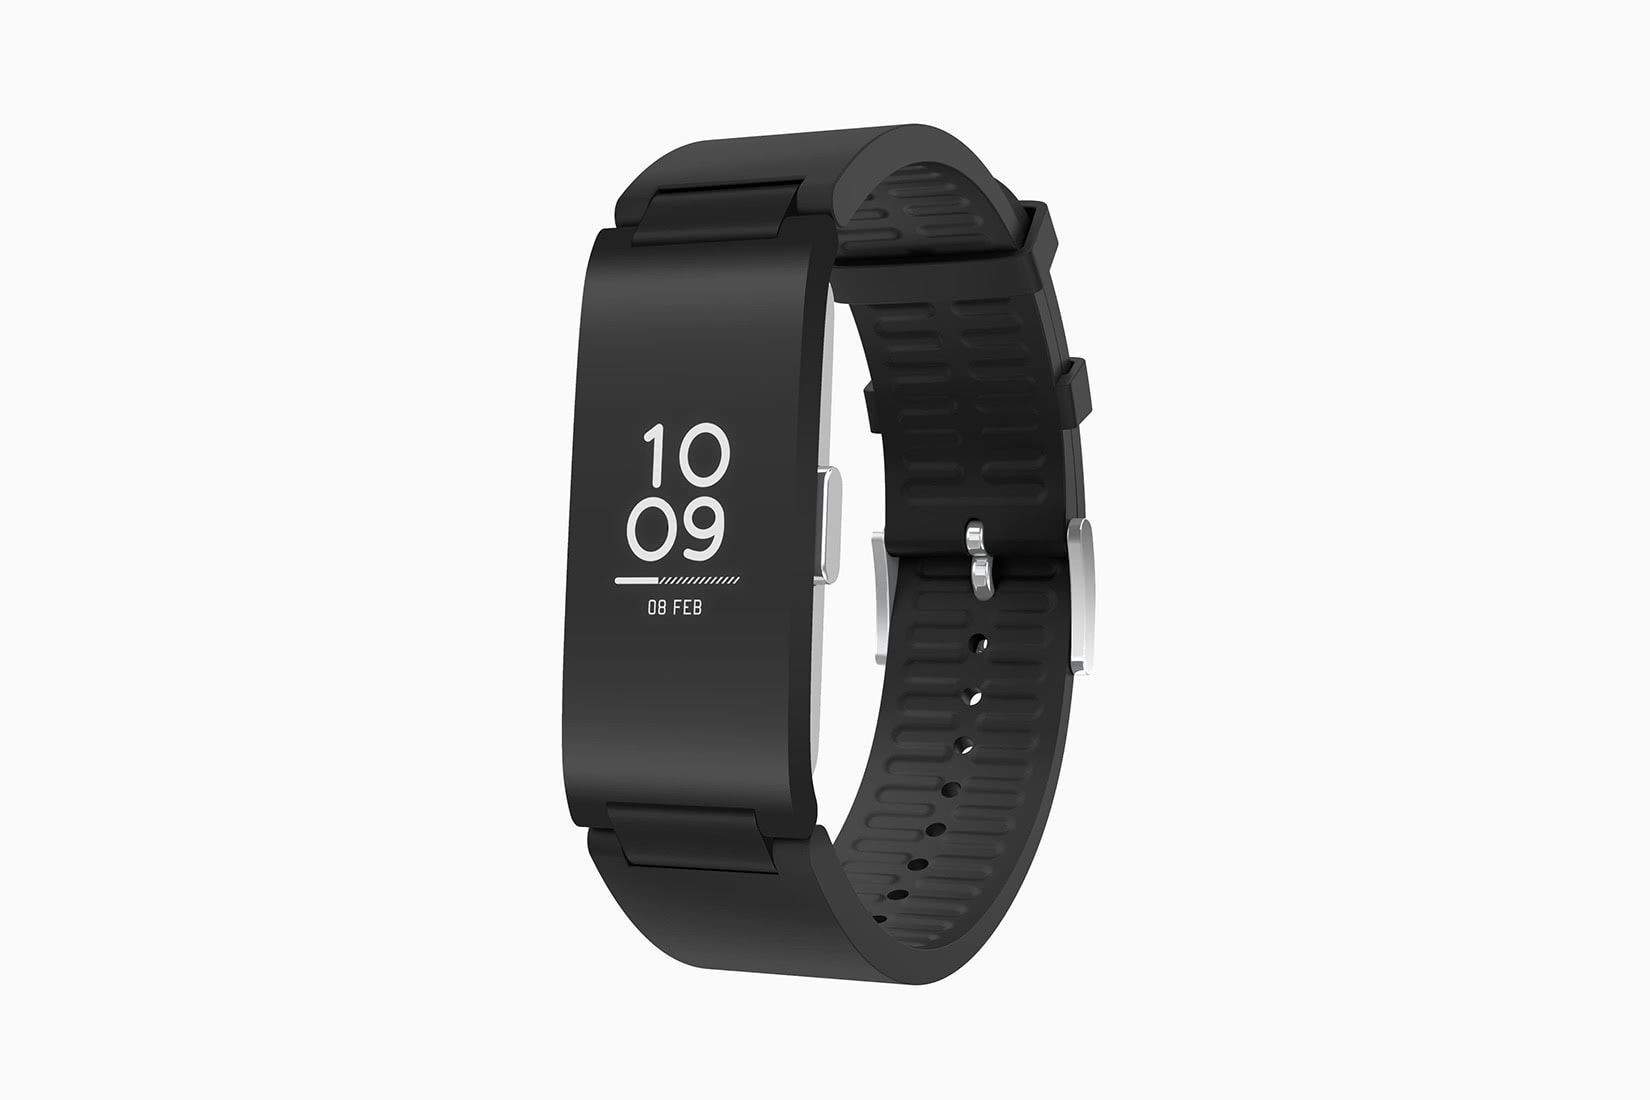 best fitness trackers value Withings pulse hr - Luxe Digital